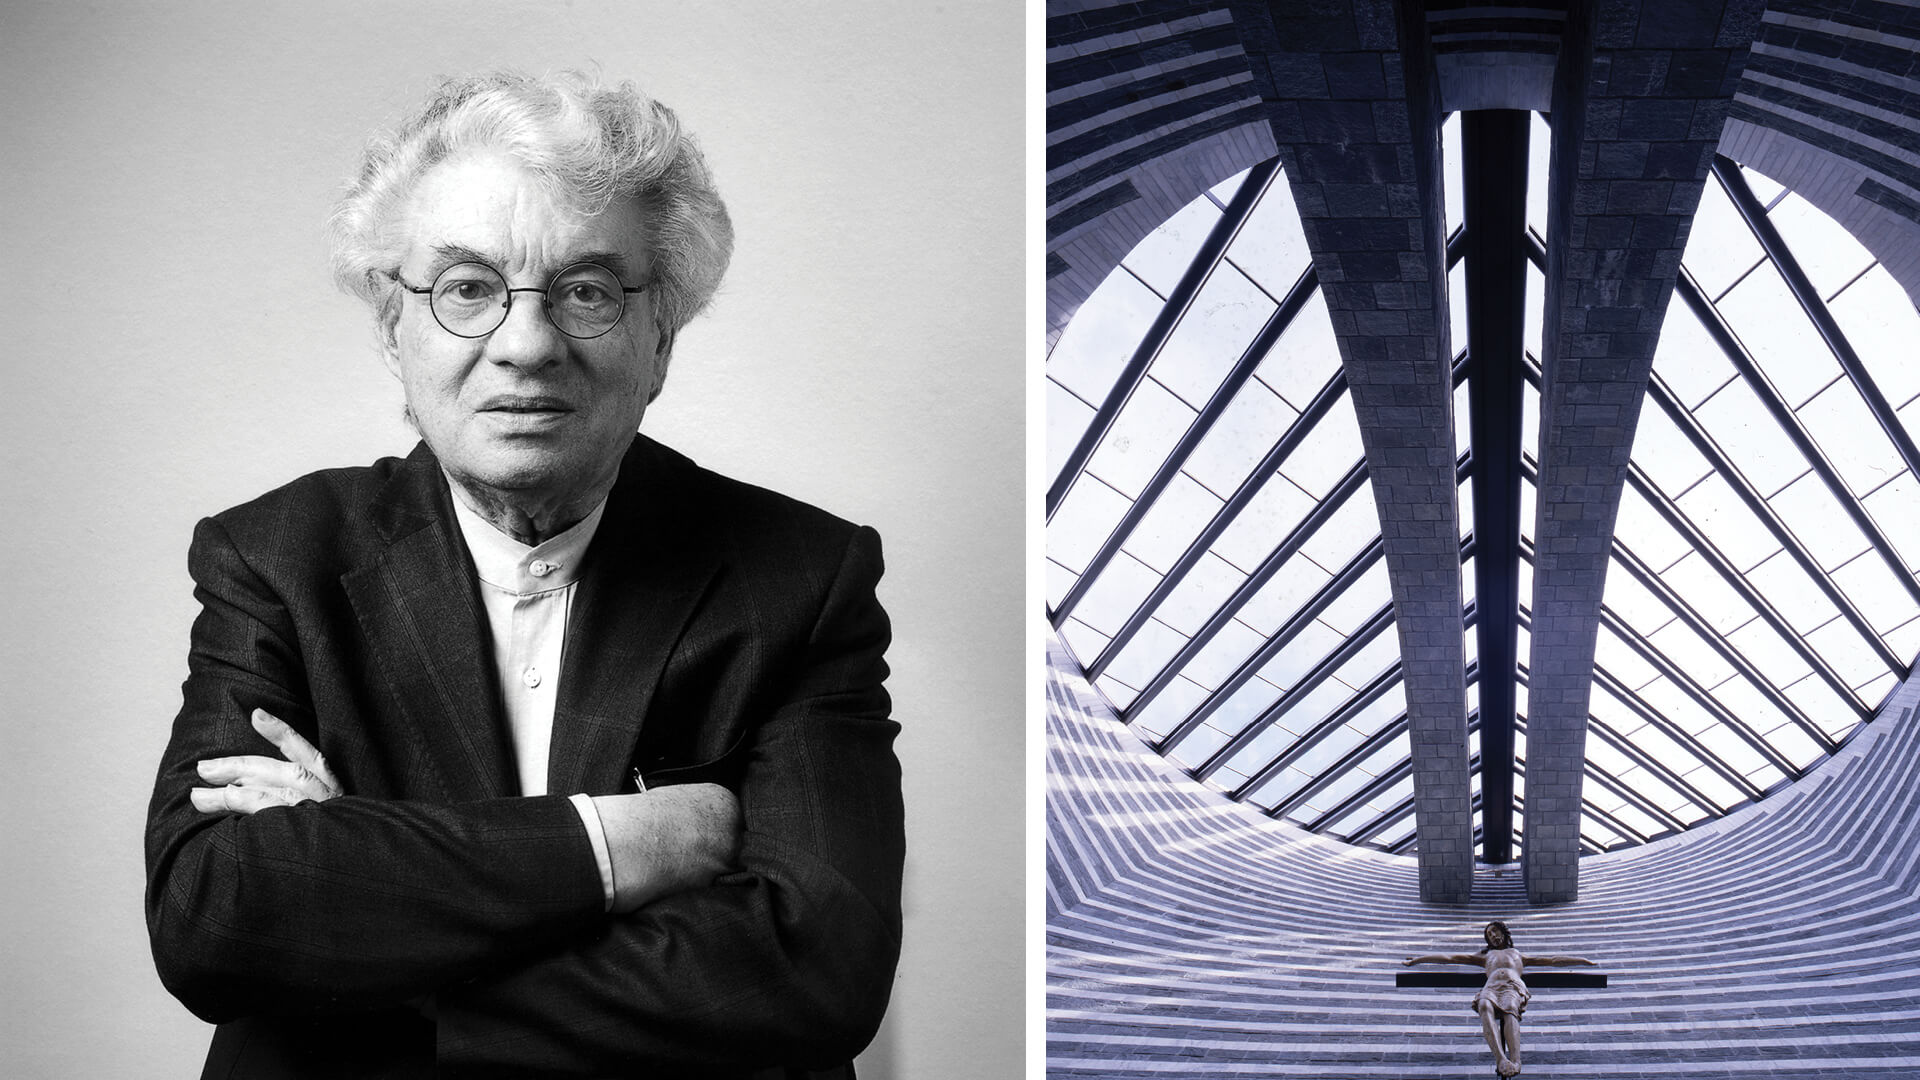 Mario Botta says memory and history should be architects' main sources of inspiration